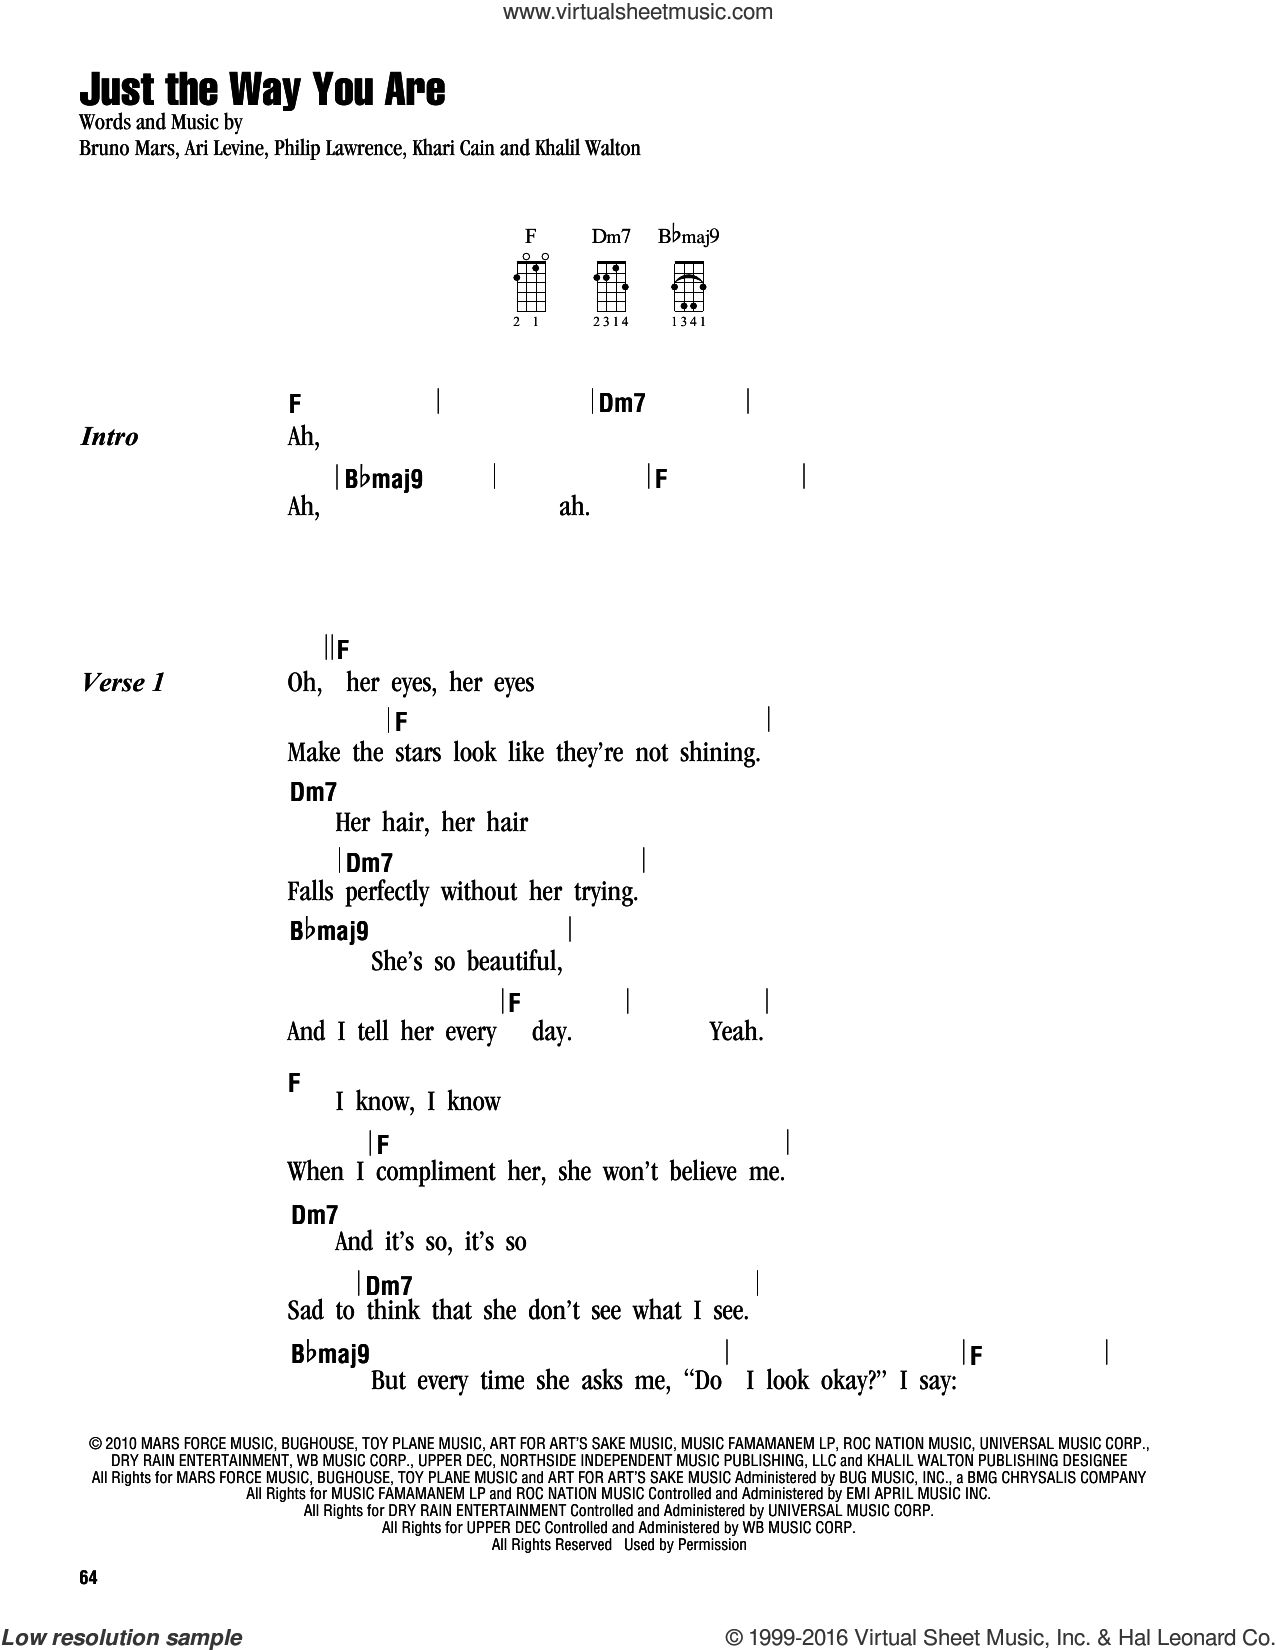 Just The Way You Are sheet music for ukulele (chords) by Bruno Mars, Ari Levine, Khalil Walton, Khari Cain and Philip Lawrence, intermediate skill level